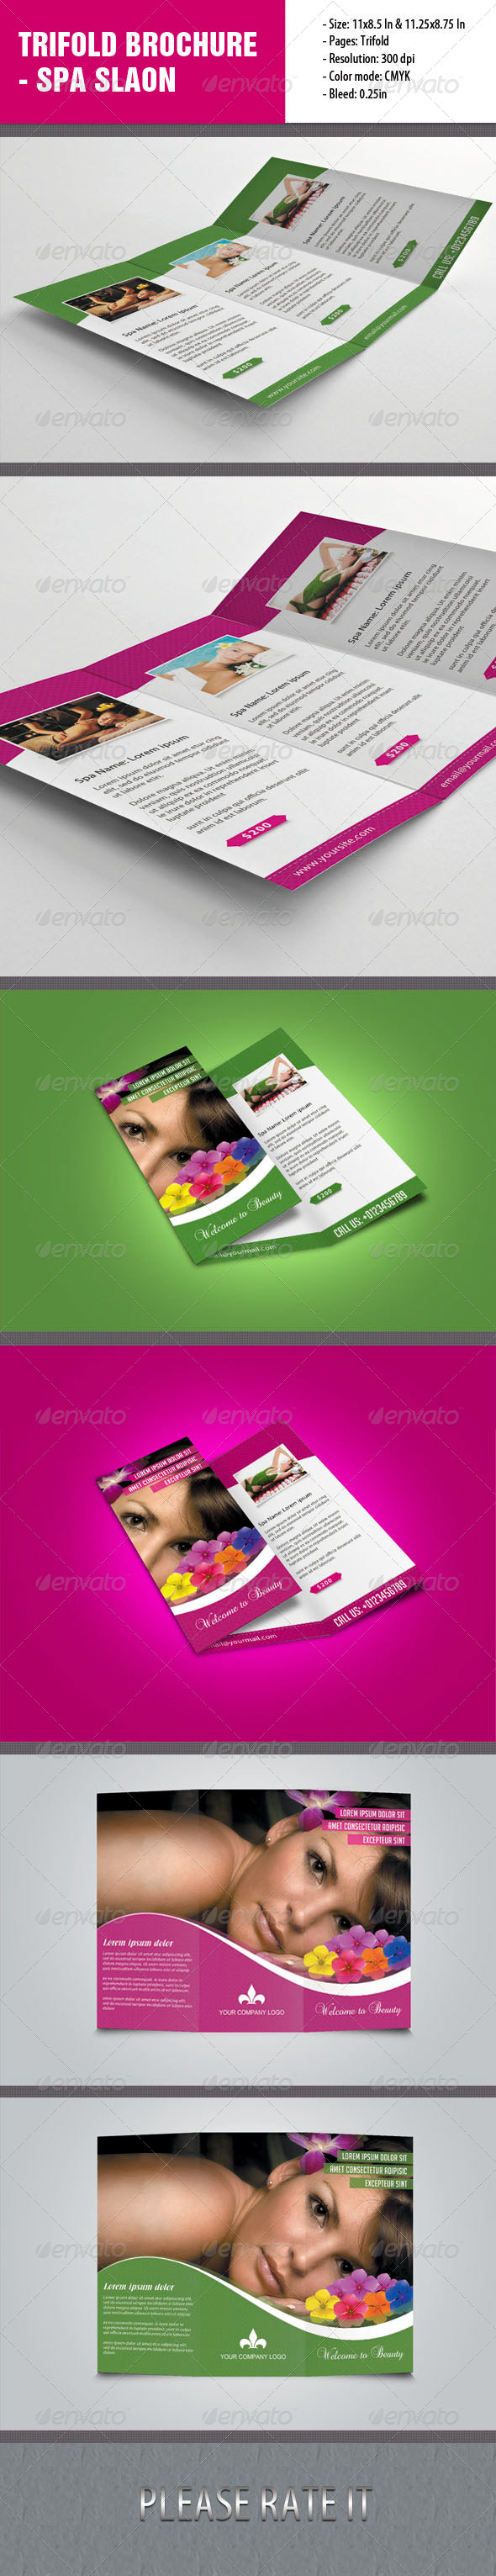 GraphicRiver Trifold Brochure For Spa Salon 4711694